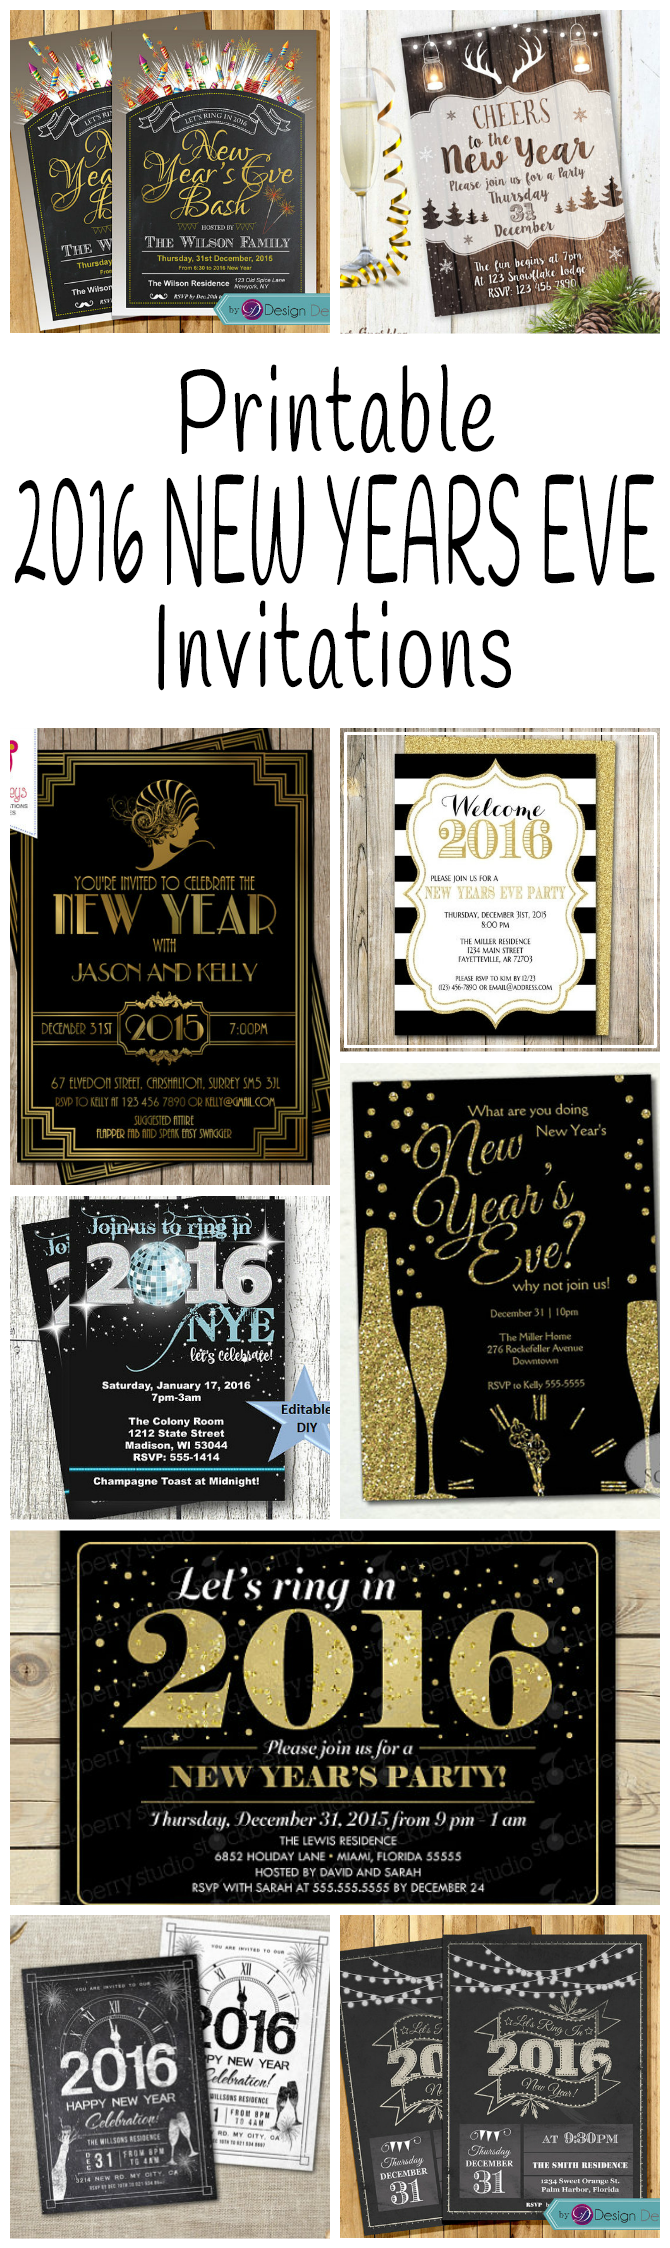 2016 New Years Eve Party Invitations | Glitter \'N Spice